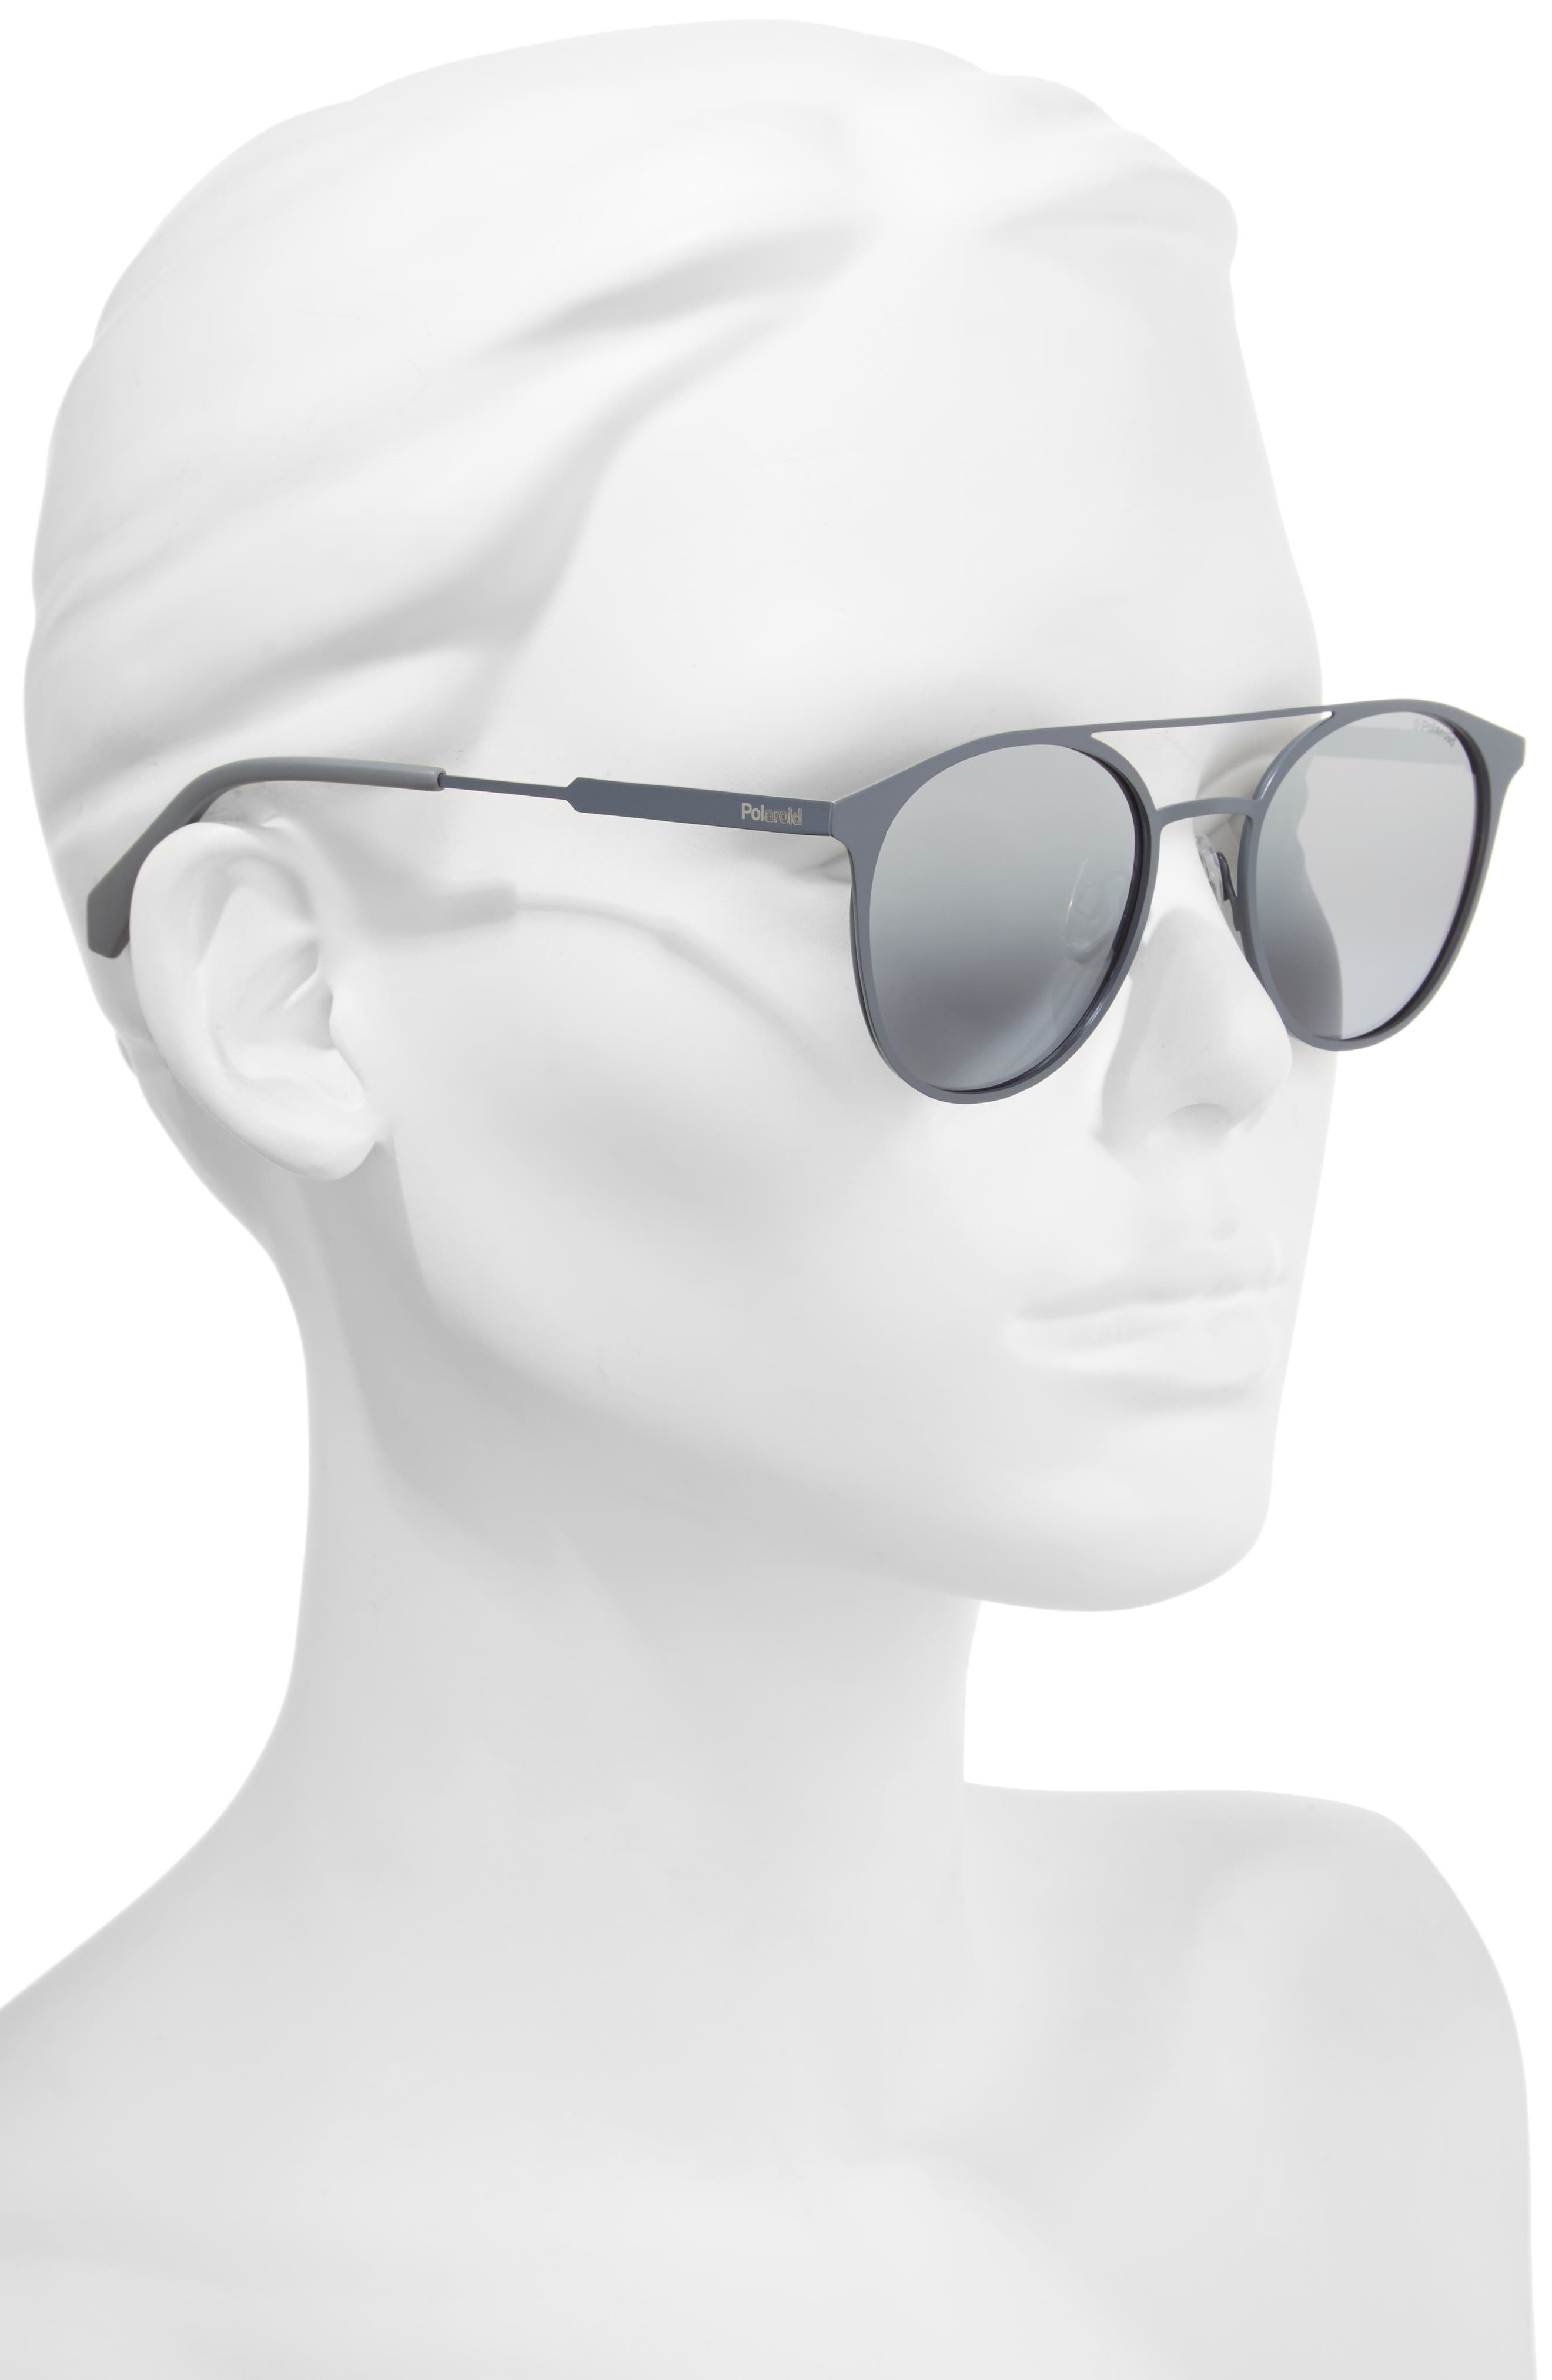 51mm Polarized Round Stainless Steel Sunglasses,                             Alternate thumbnail 4, color,